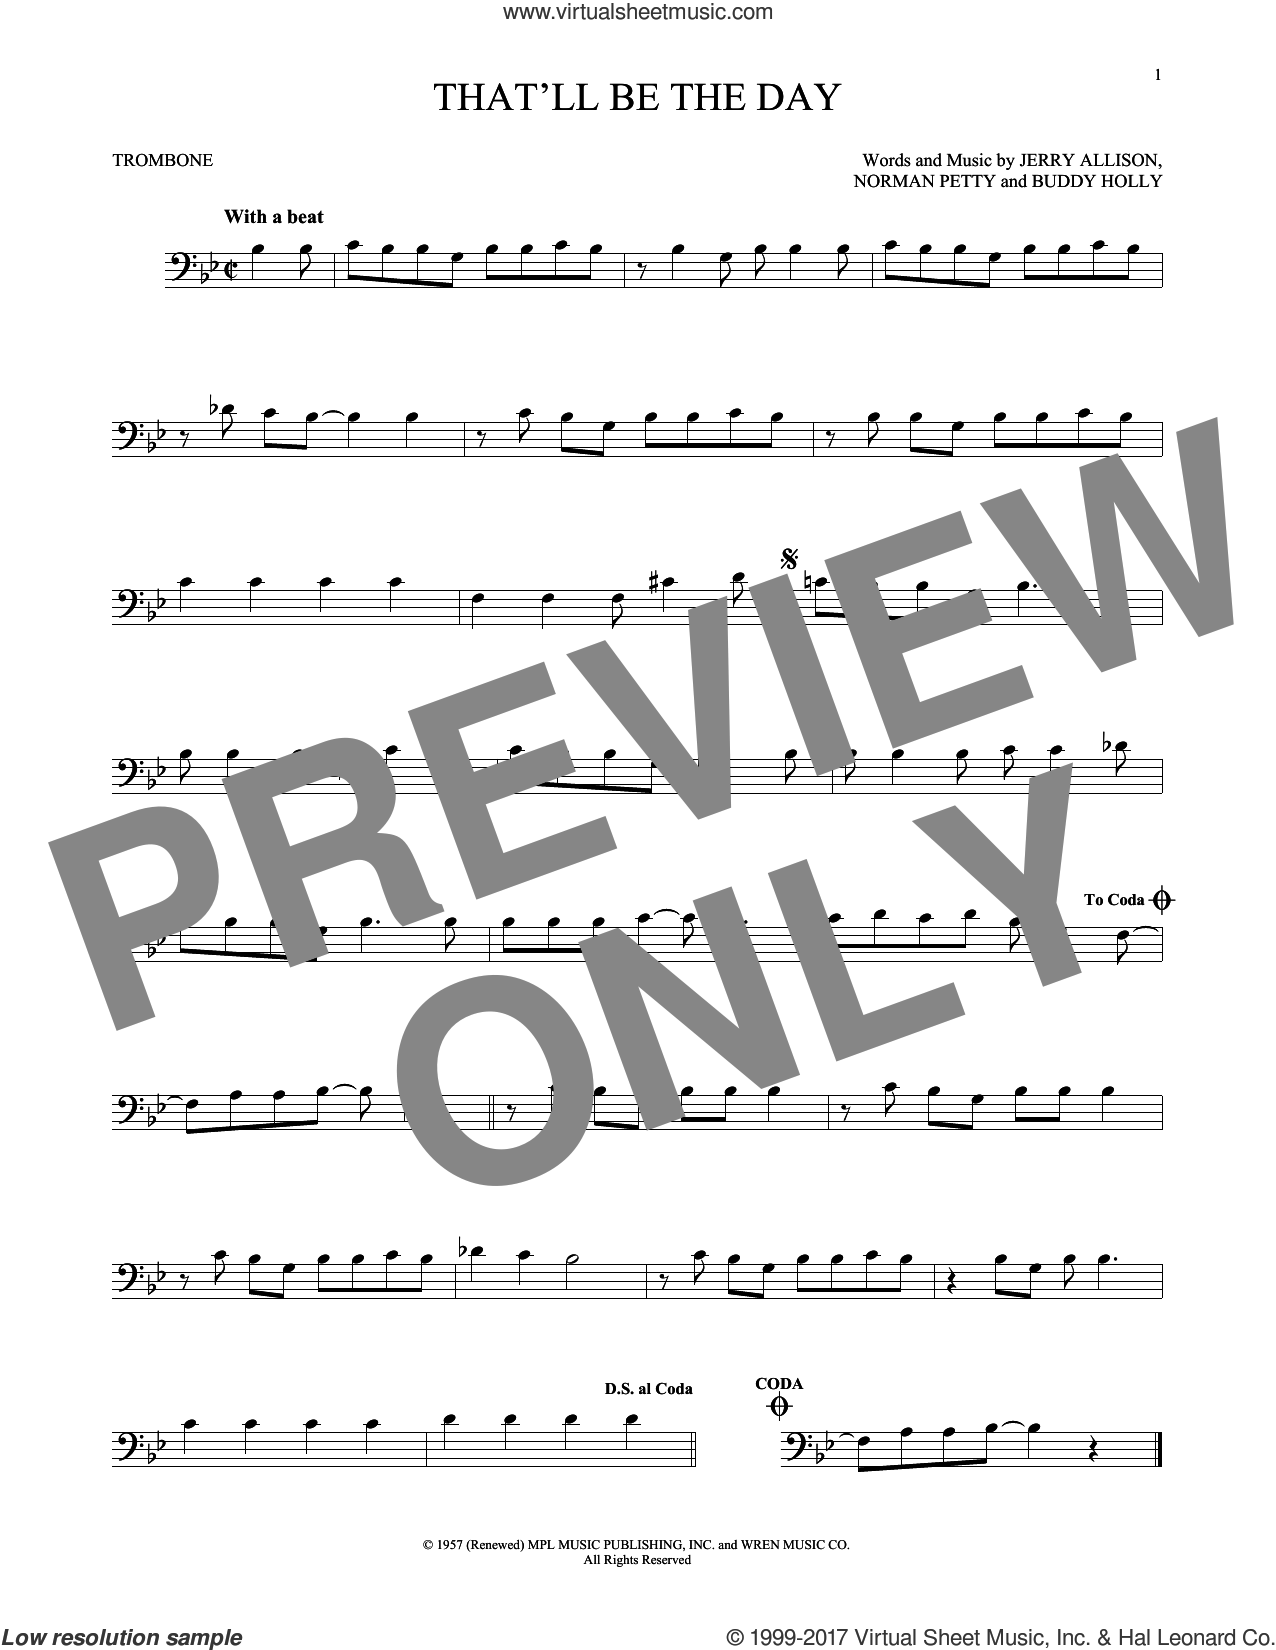 That'll Be The Day sheet music for trombone solo by The Crickets, Buddy Holly, Jerry Allison and Norman Petty, intermediate skill level